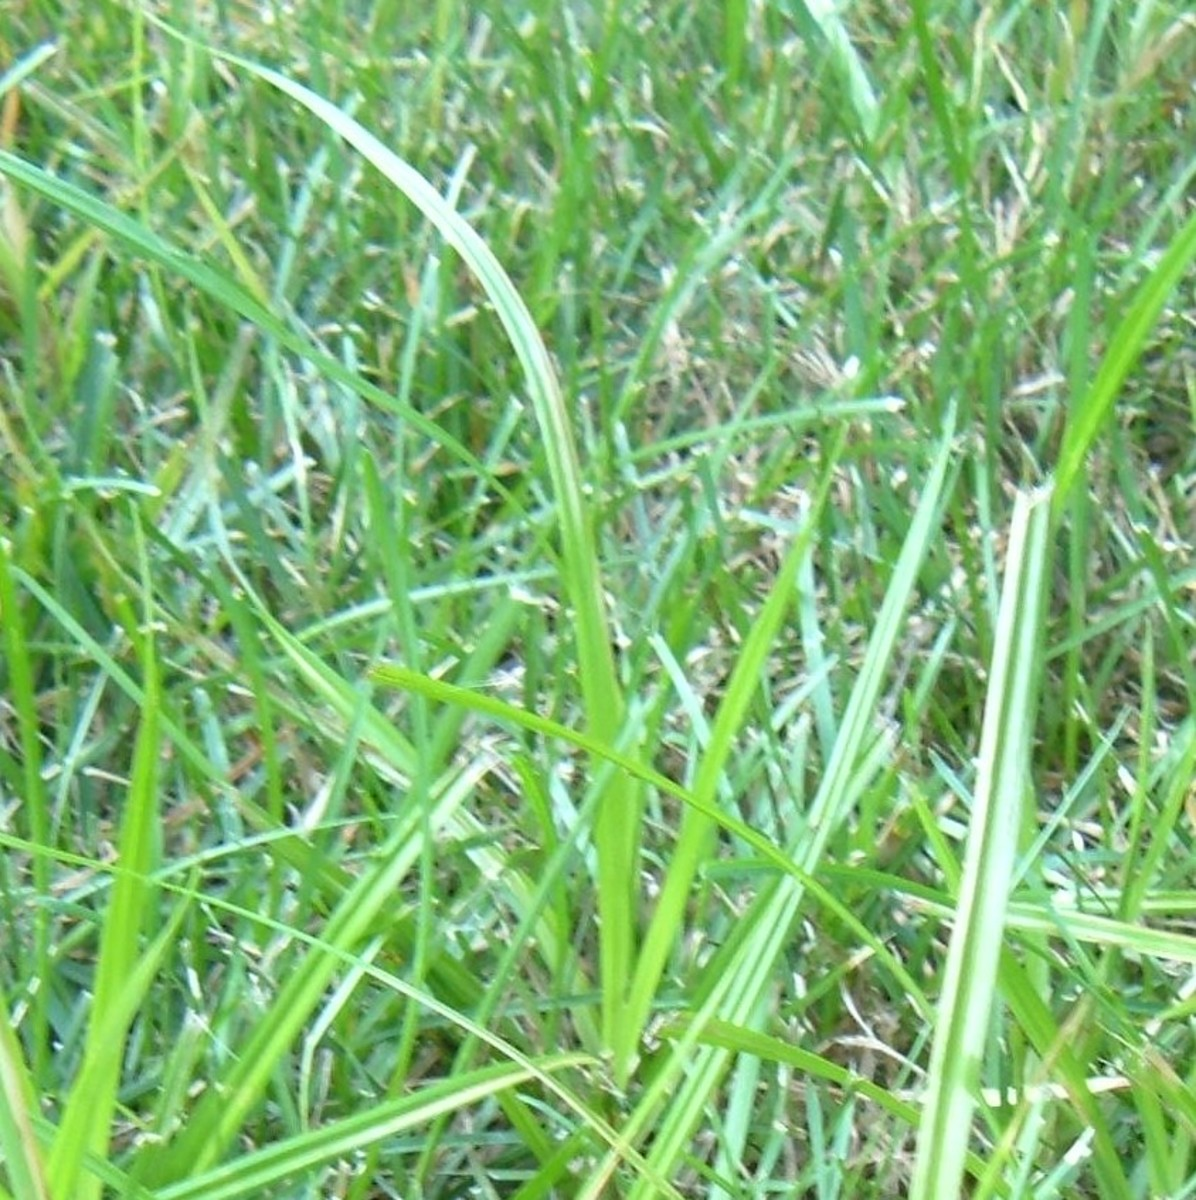 Nutsedge may look like grass, but it is an aggressive weed